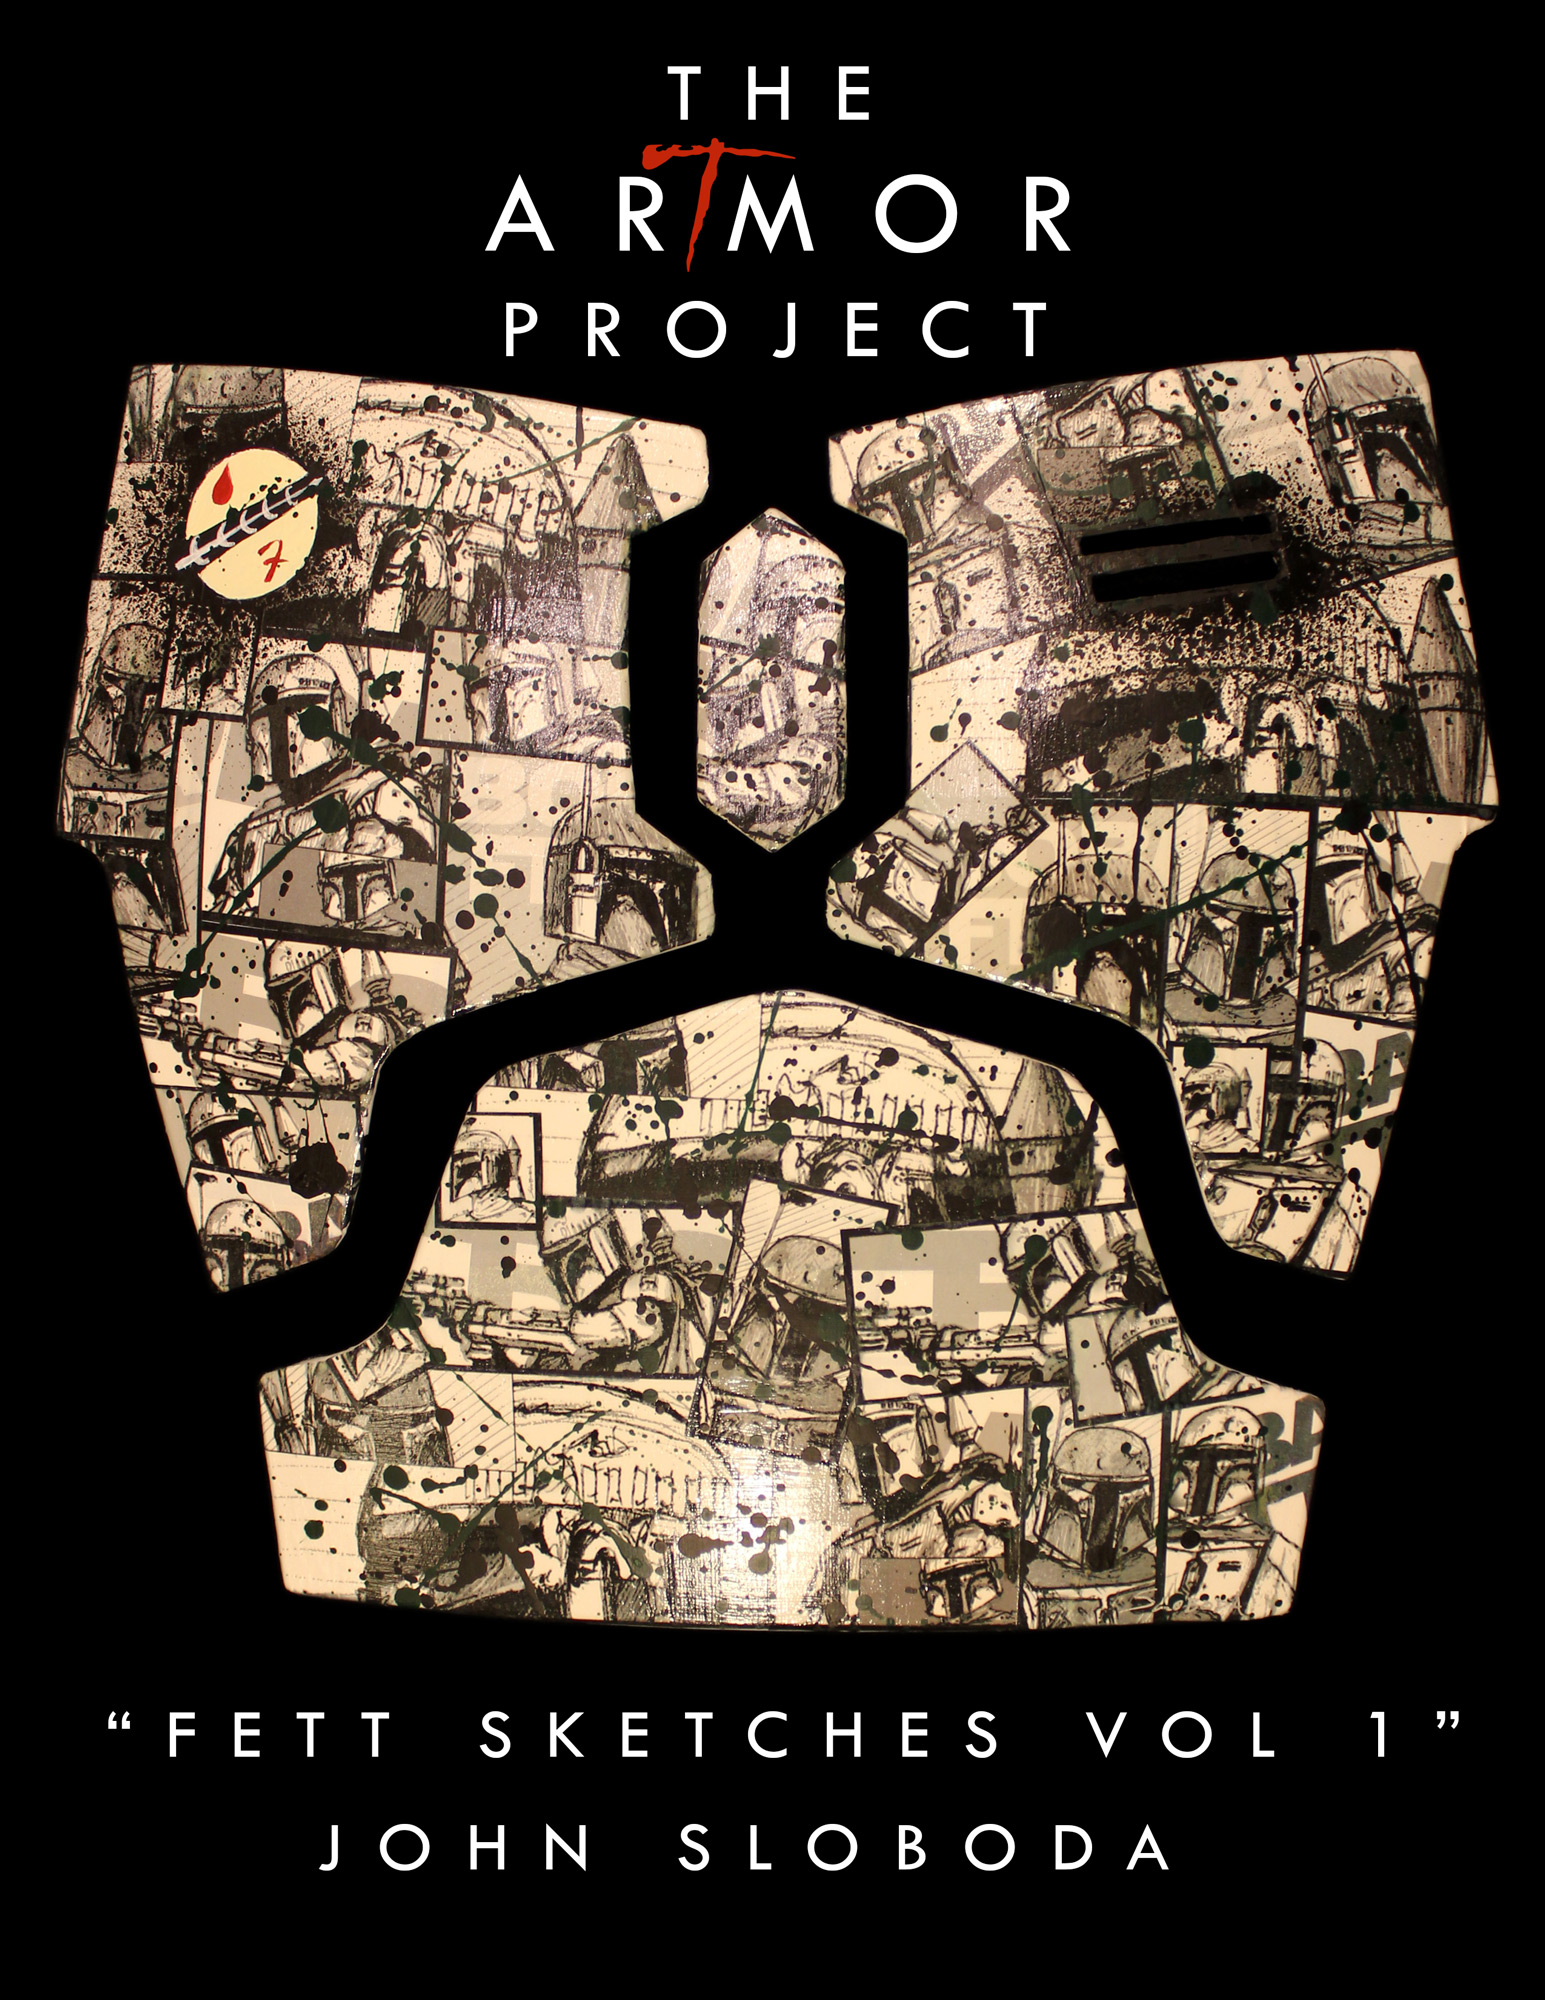 ArTmor 2015: Fett Sketches Vol. 1